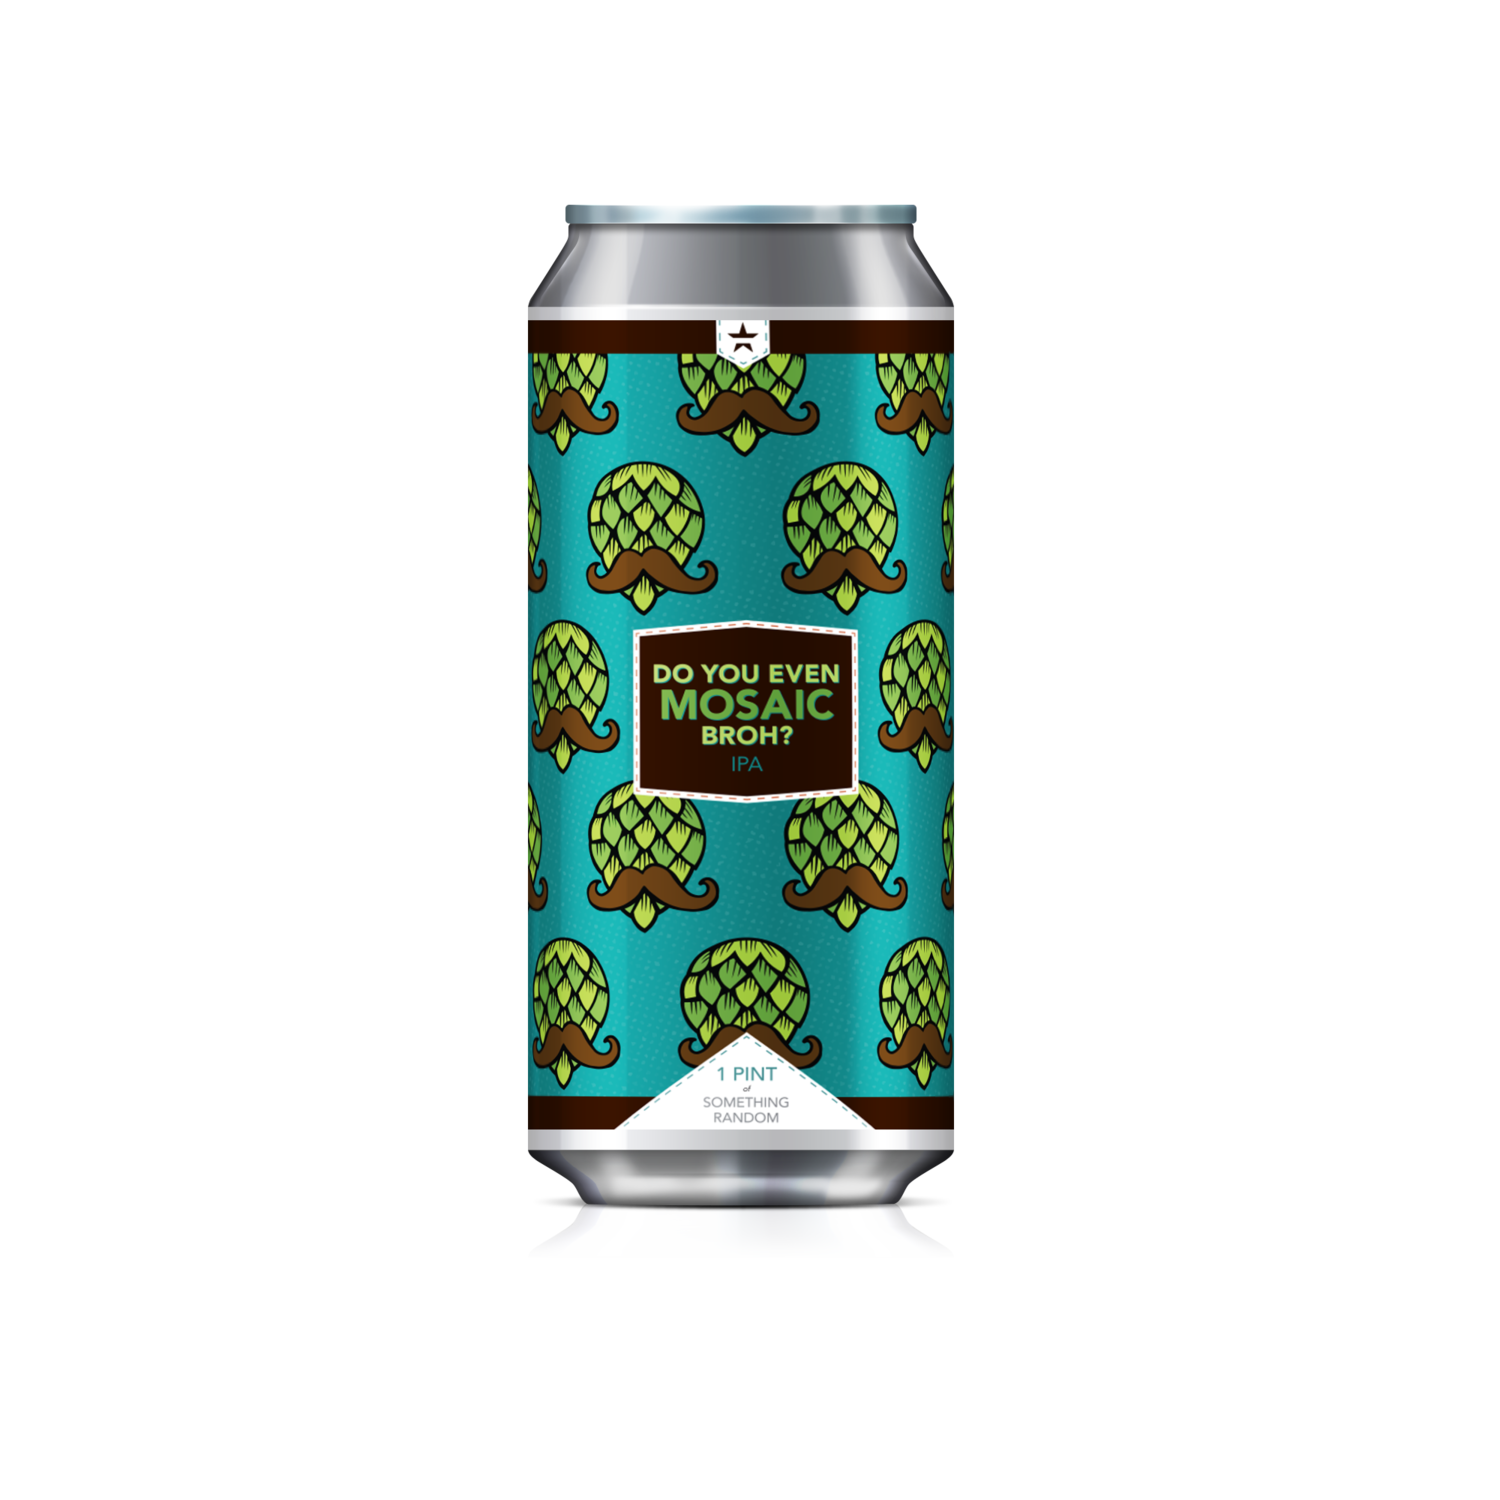 Do You Even Mosaic Broh? 4-Pack (West Coast IPA)